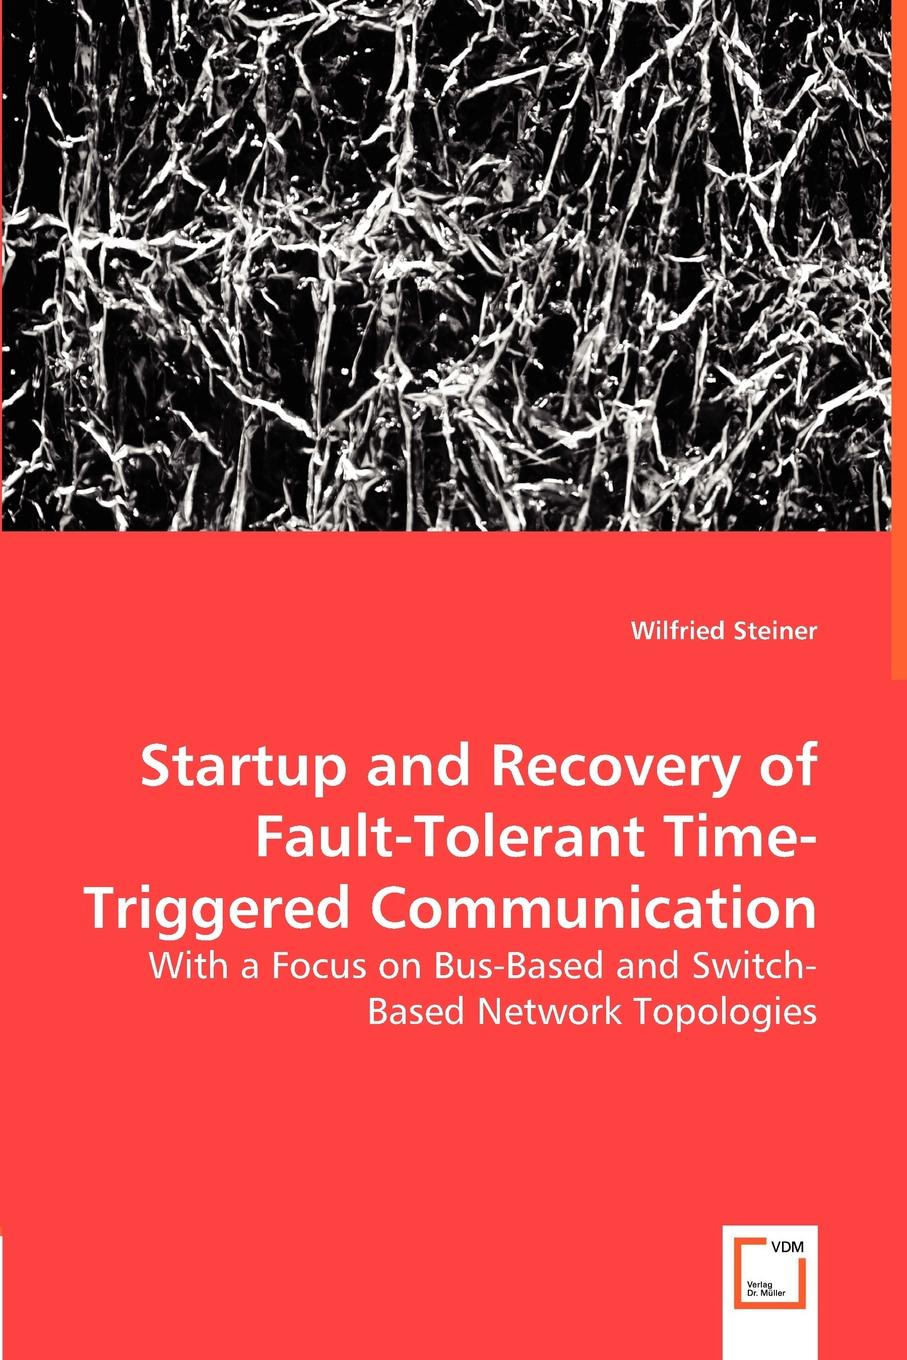 Wilfried Steiner Startup and Recovery of Fault-Tolerant Time-Triggered Communication